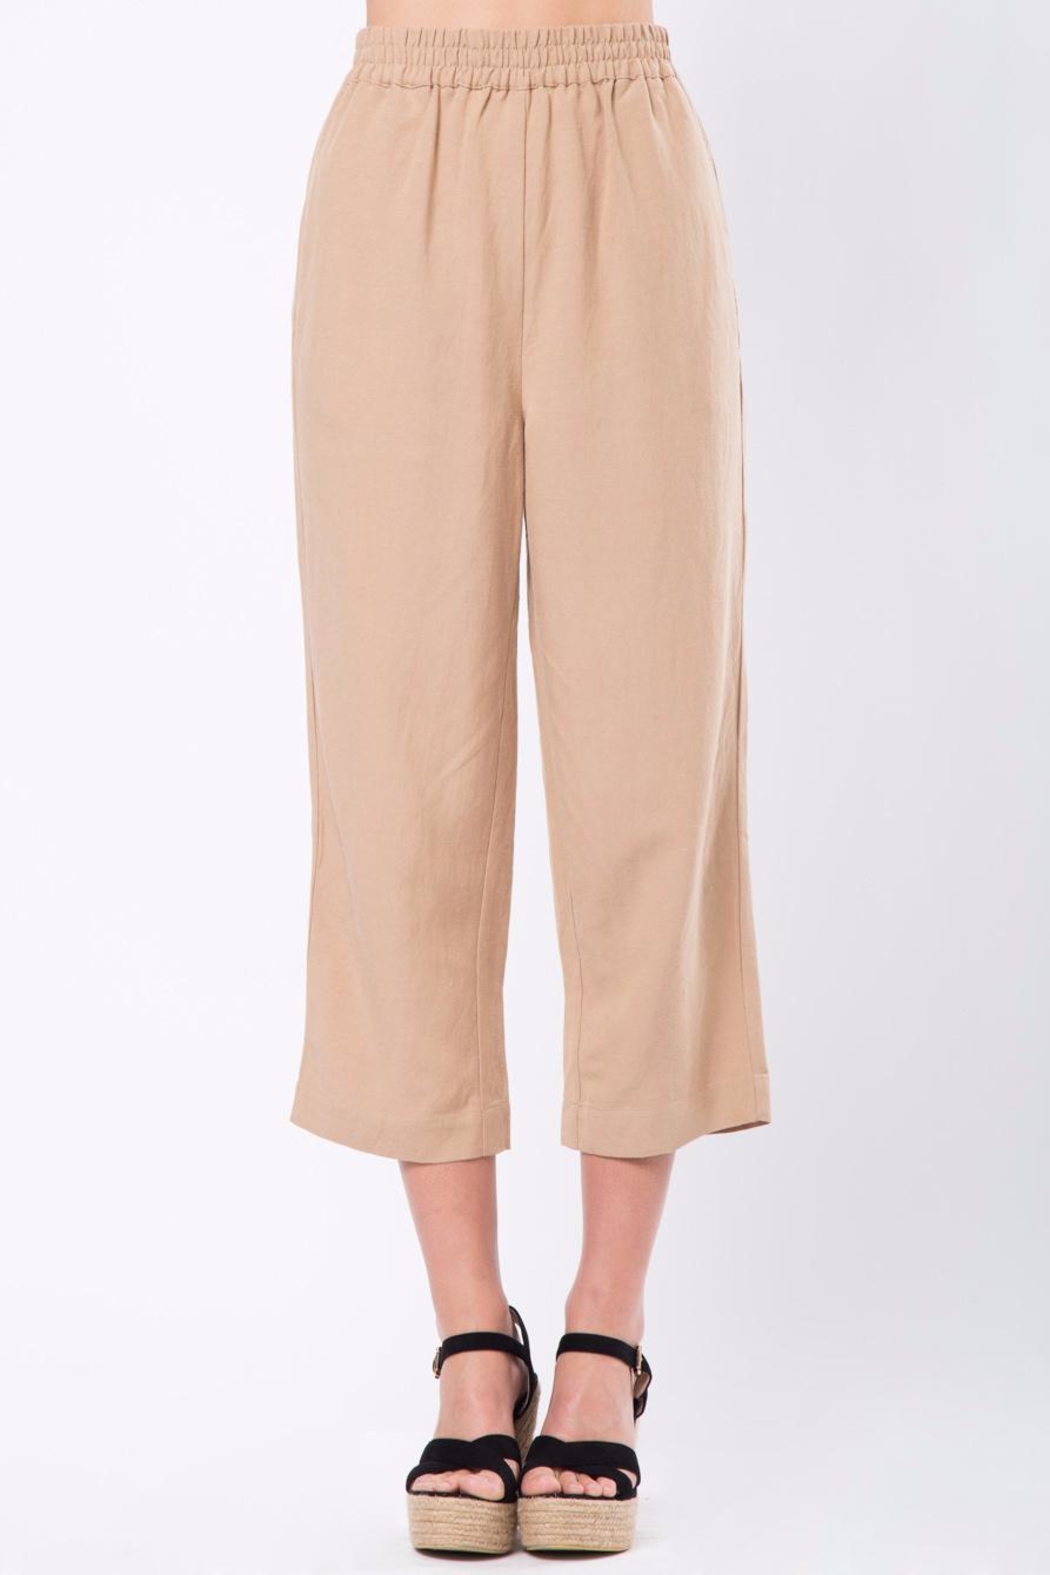 Movint Cropped Pants with Elastic Waist - Main Image